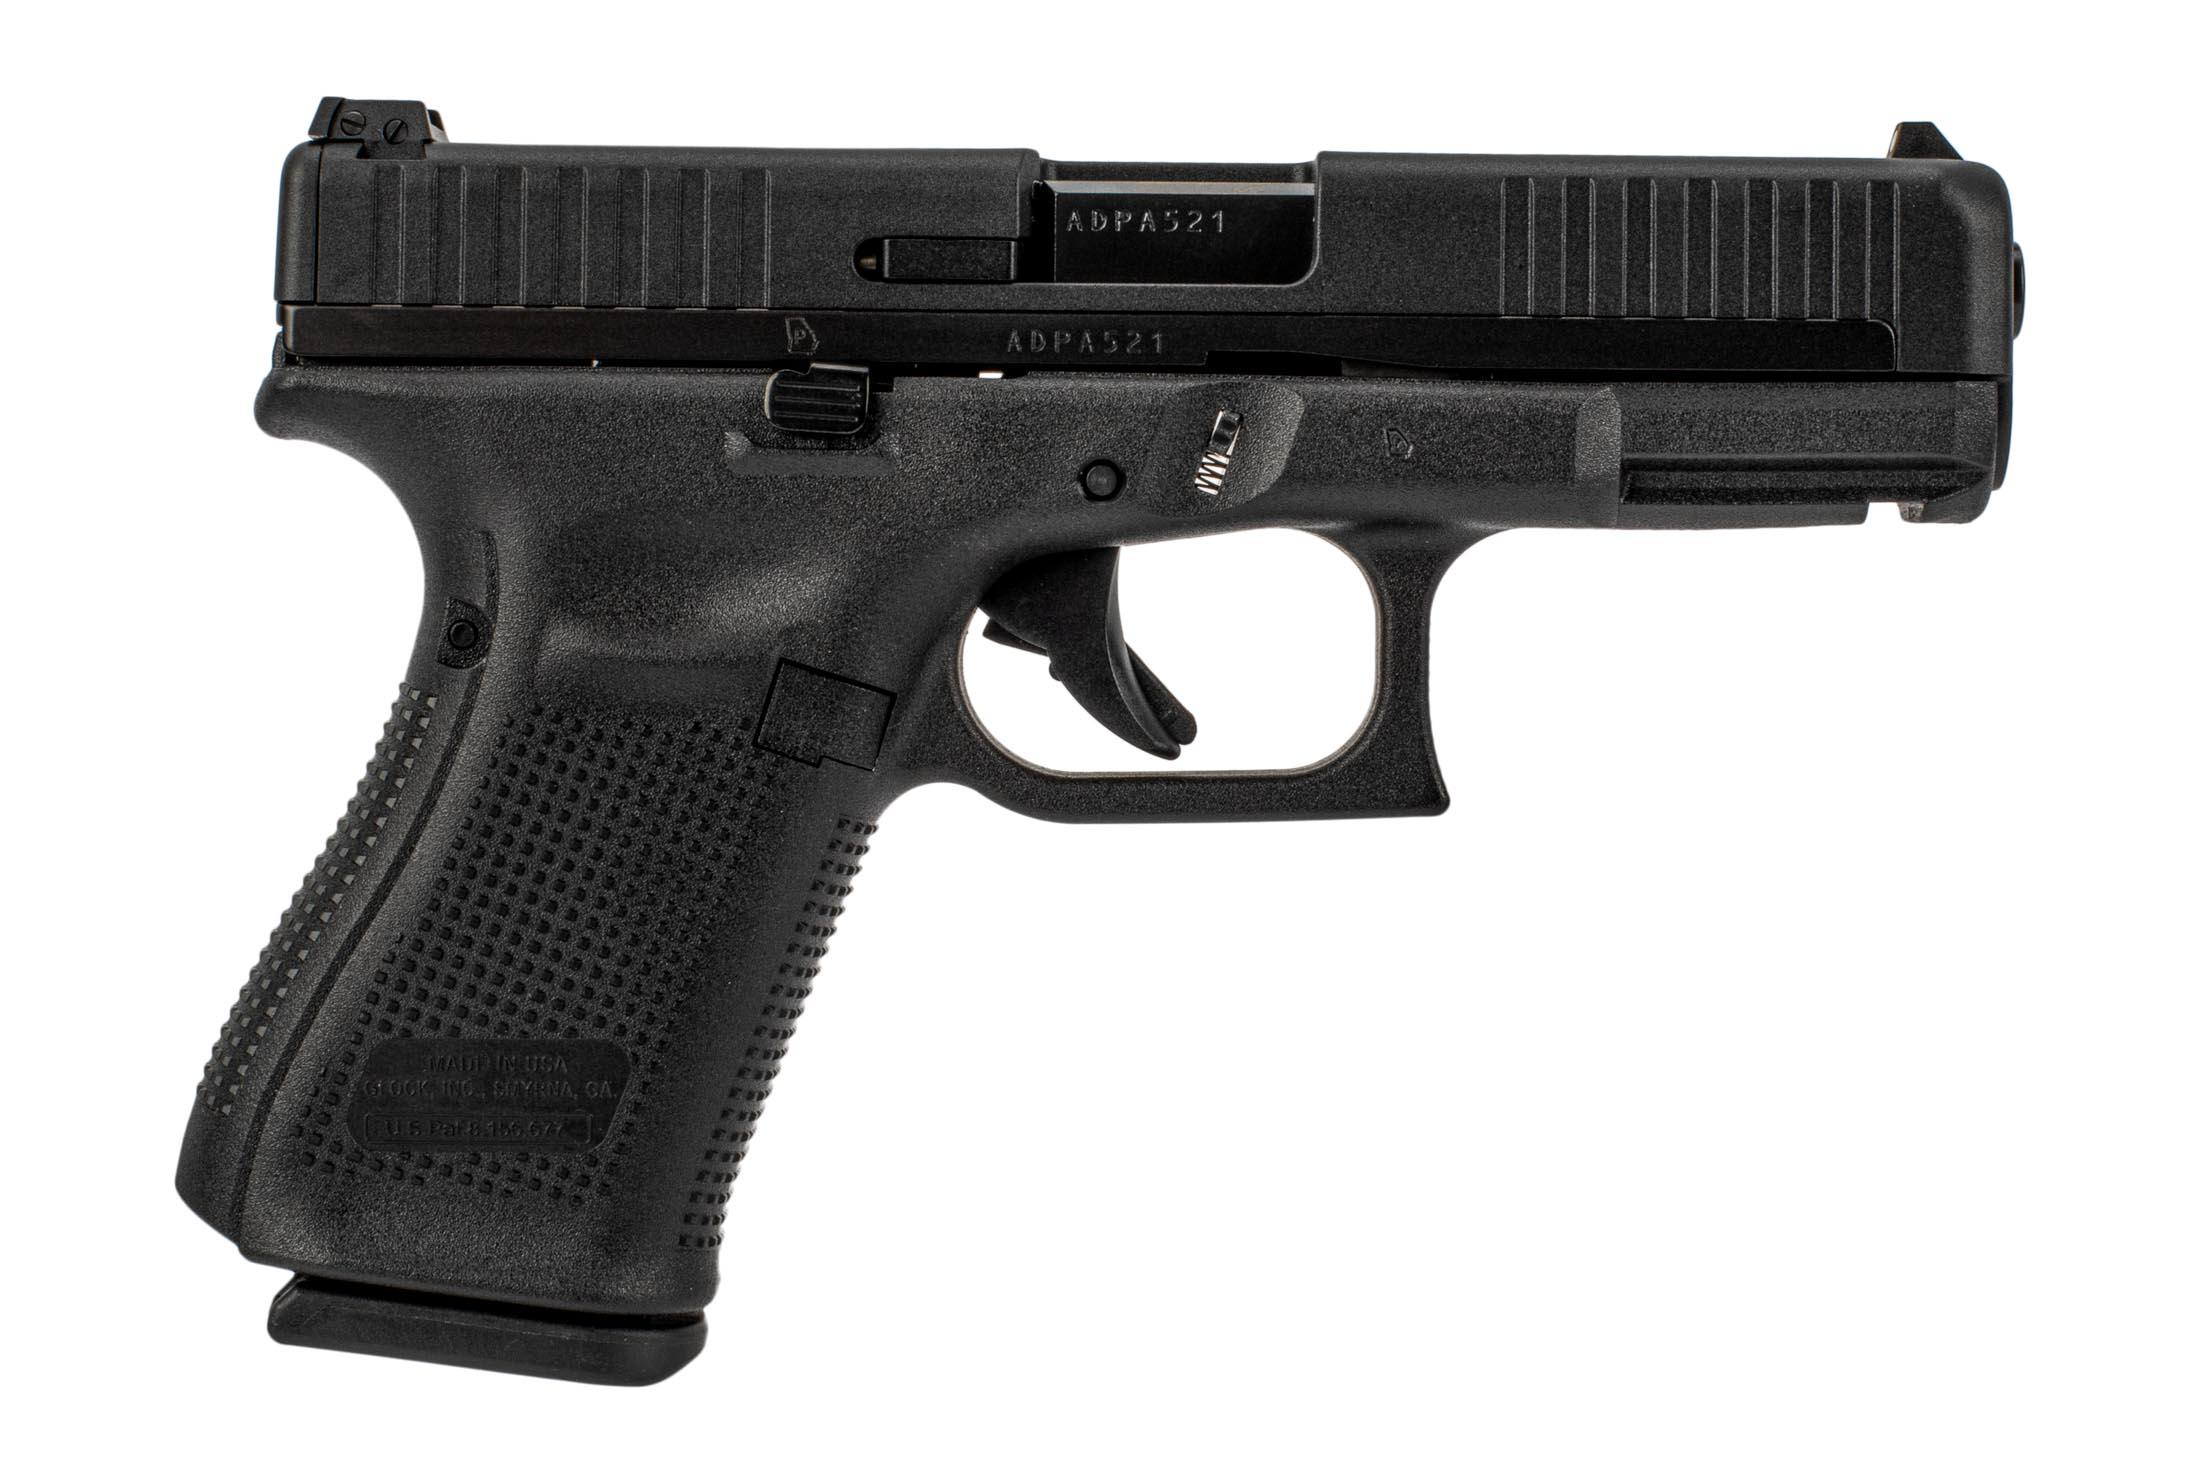 Glock 44 pistol is chambered in 22lr and features a polymer steel hybrid slide